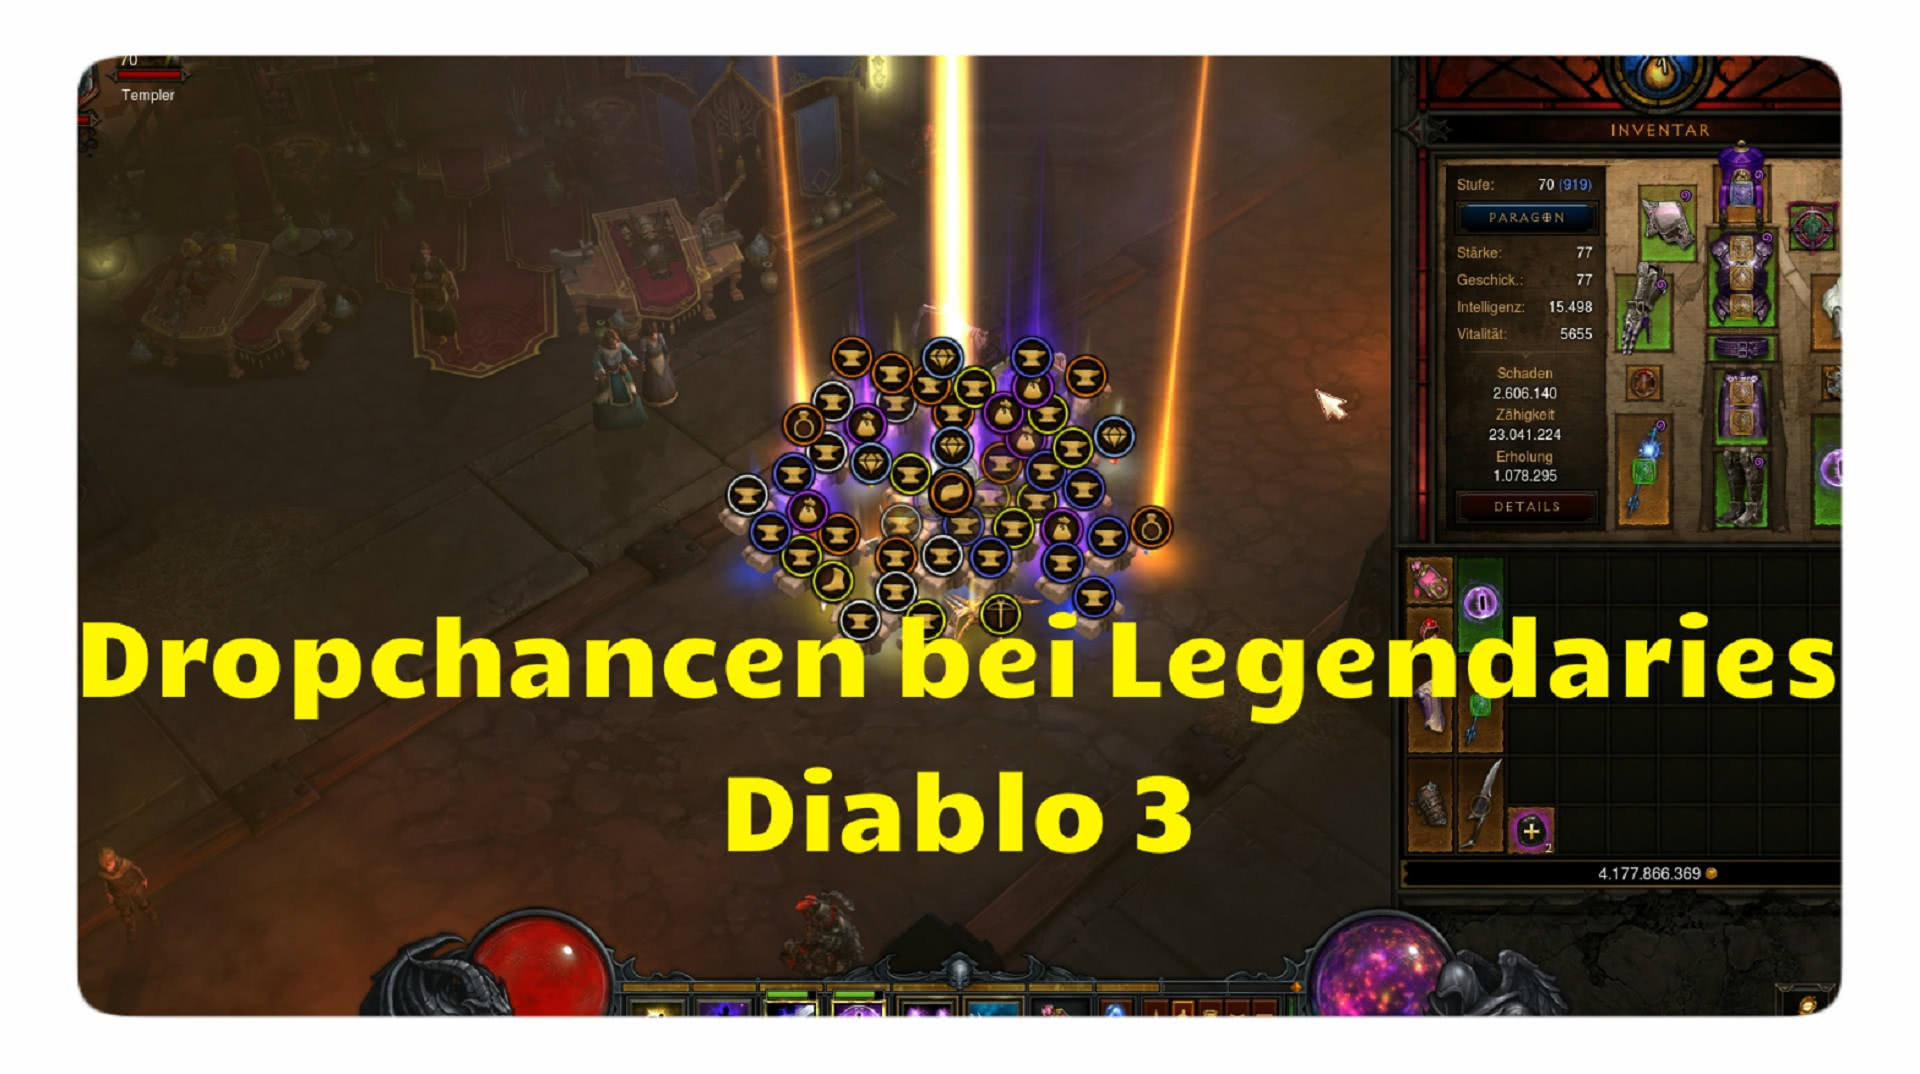 Dropchancen bei Legendaries